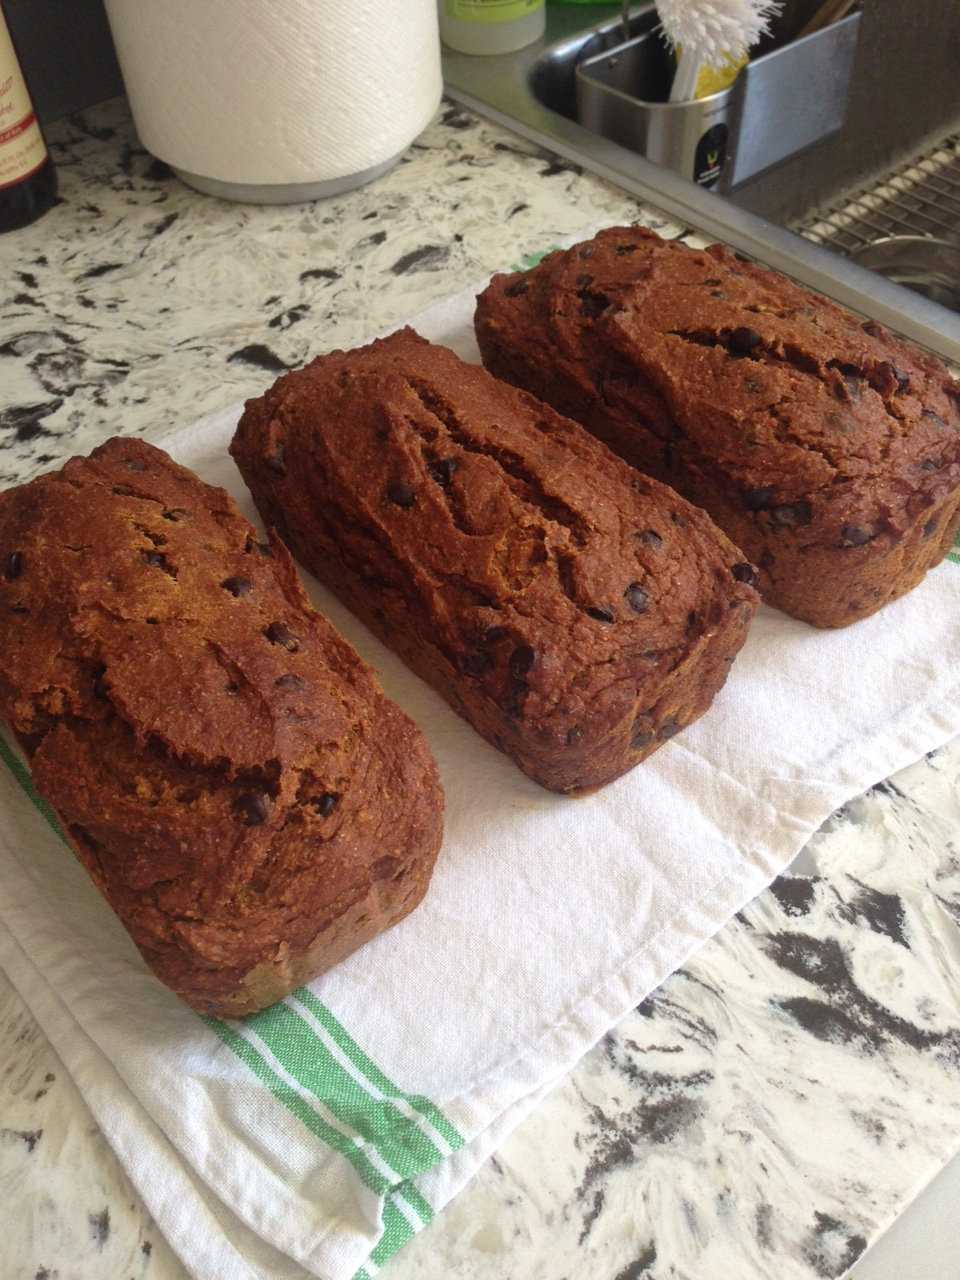 Pumpkin Chocolate Chip Bread - 2 loaves were sliced and frozen, 1 loaf traveled to NH!